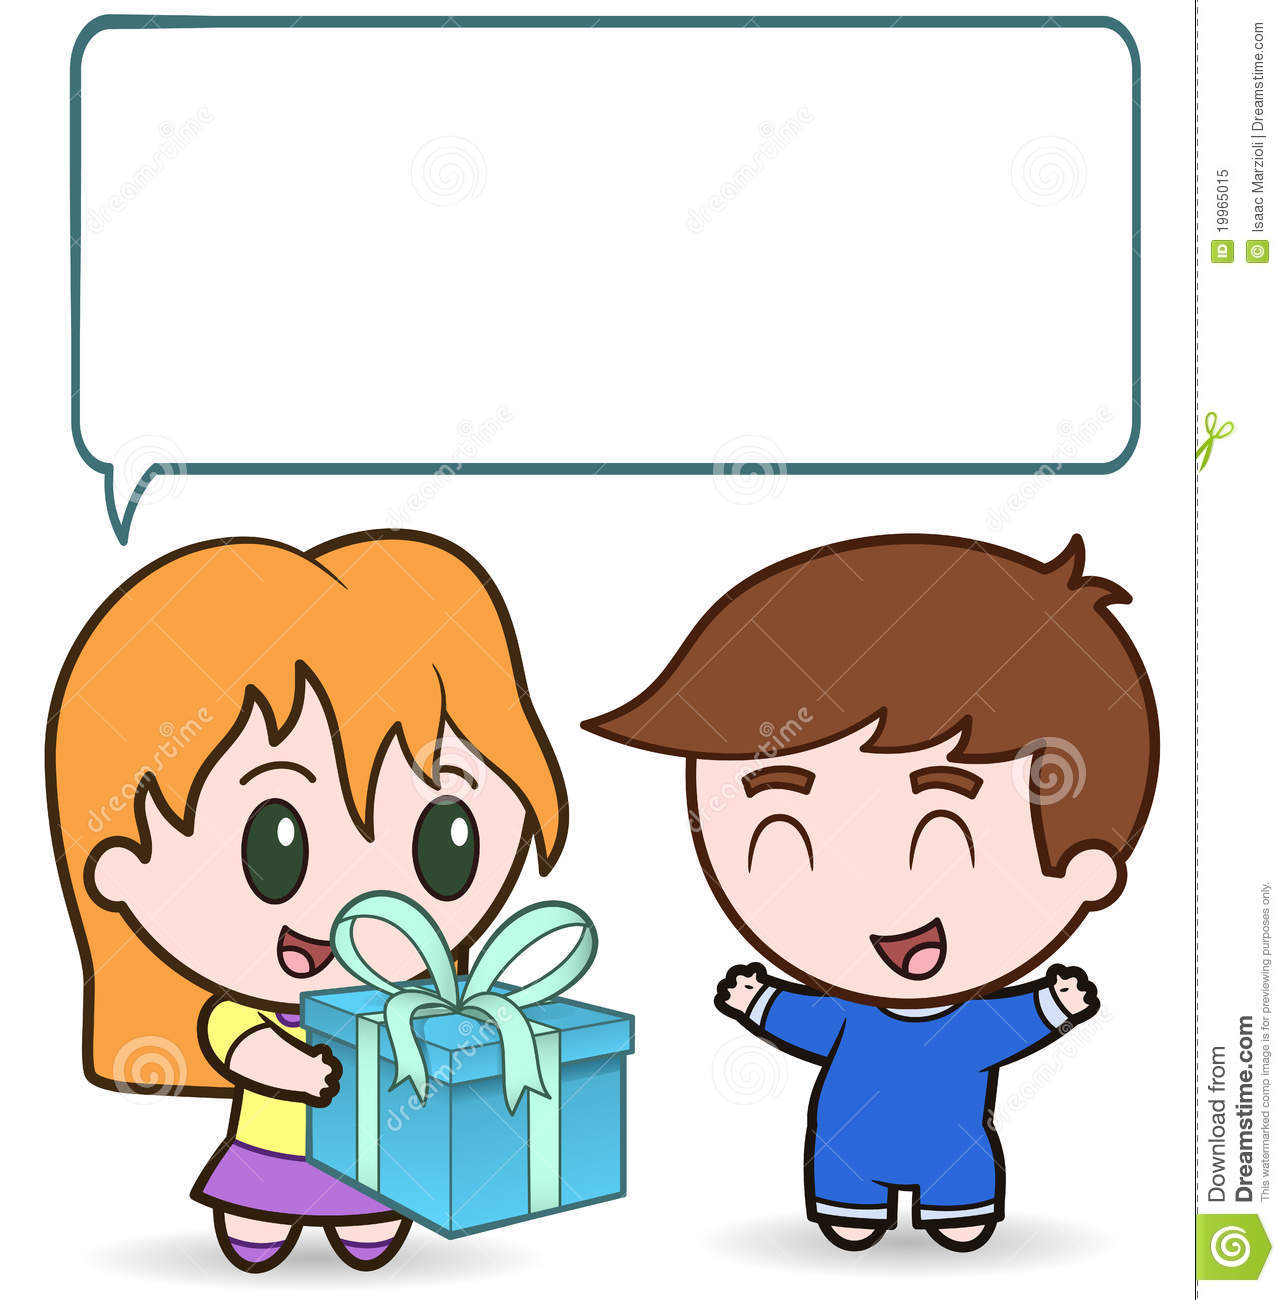 This Is An Illustration Of A Girl Giving A Present To A Little Boy